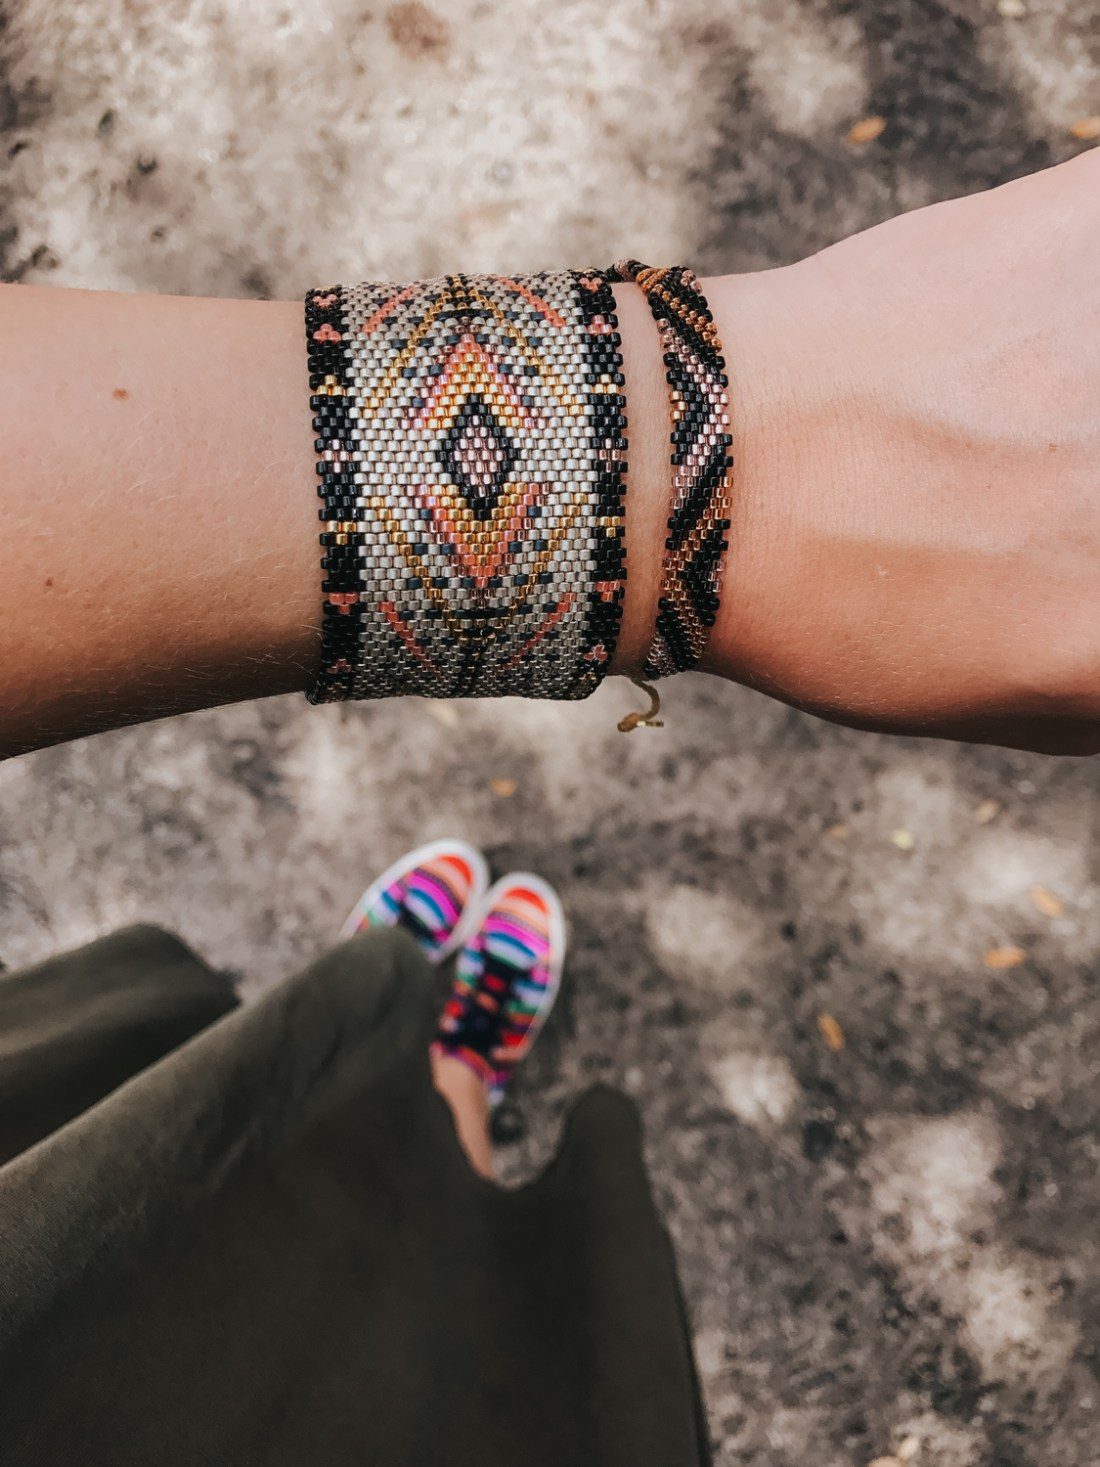 Currently wearing: @Kutulakiss hand beaded bracelets and ISKAY colorful sneakers